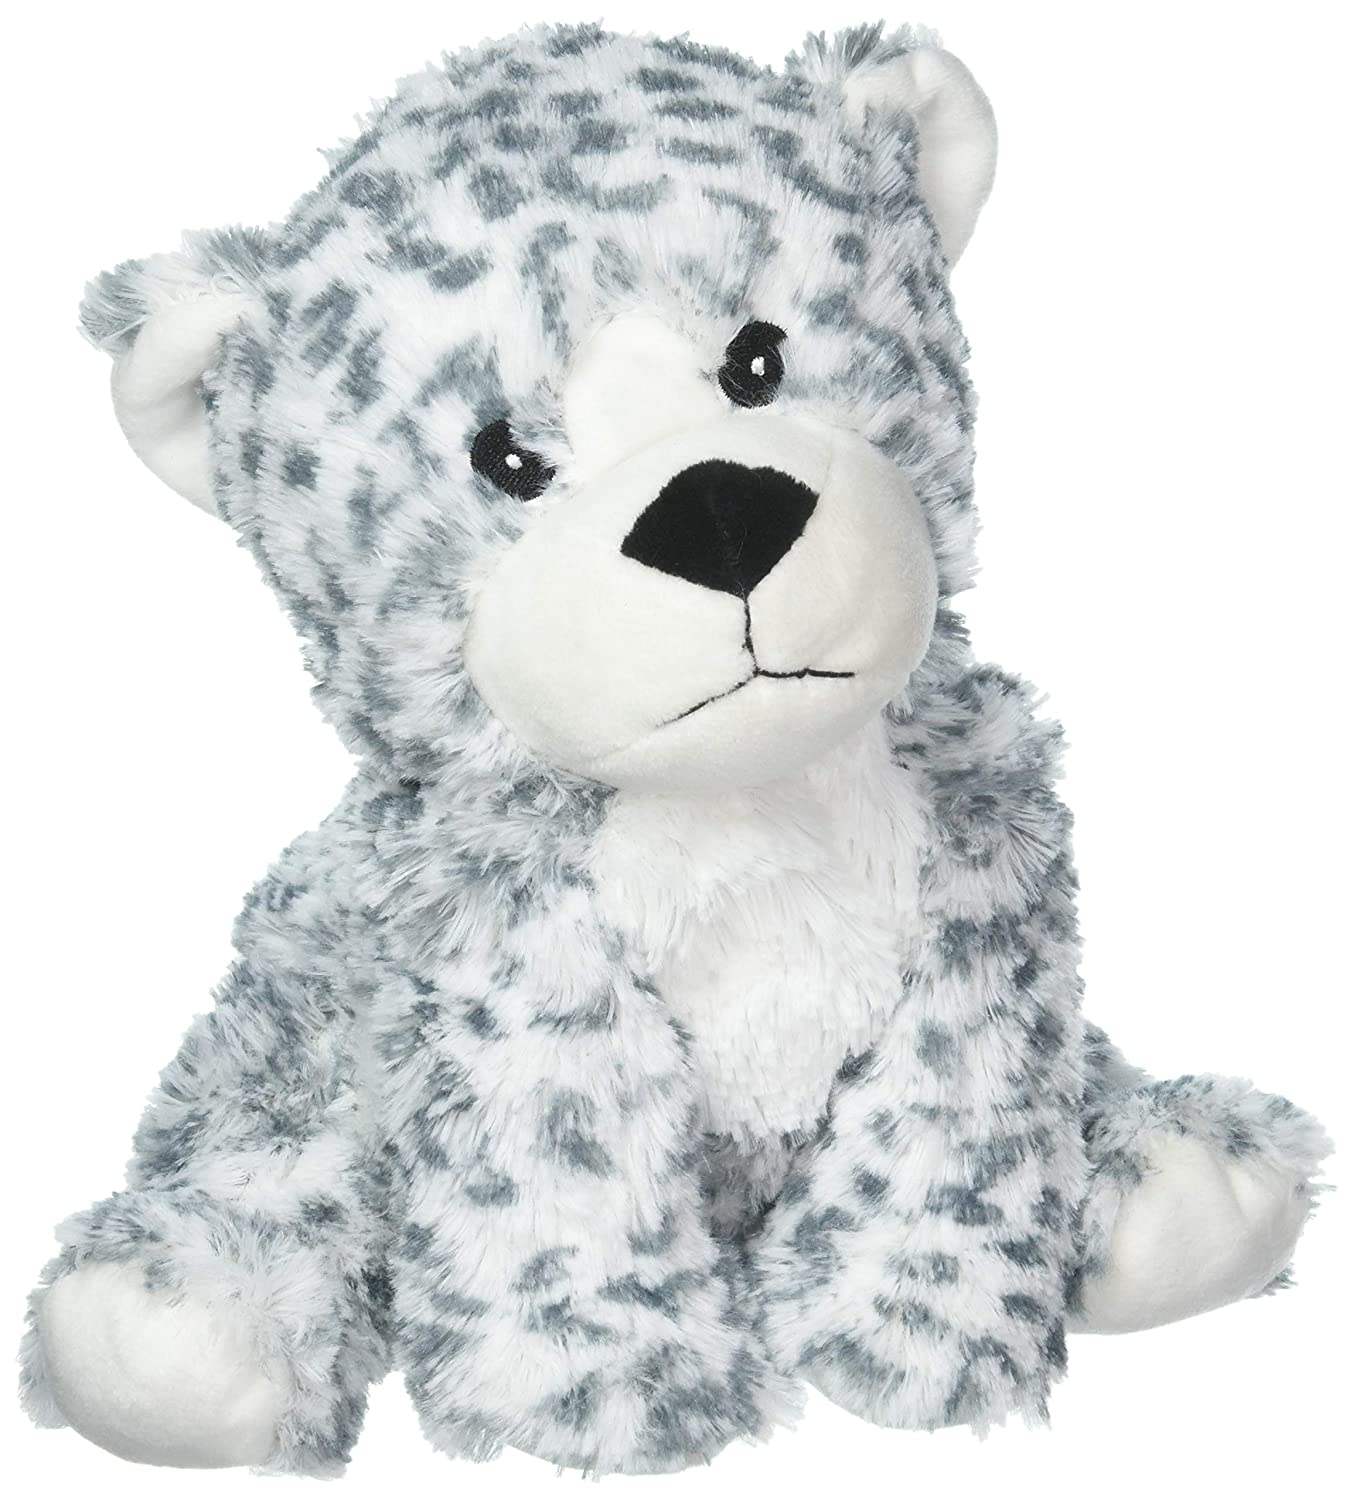 Intelex Cozy Microwaveable Plush Snow Leopard - Lavender Scented